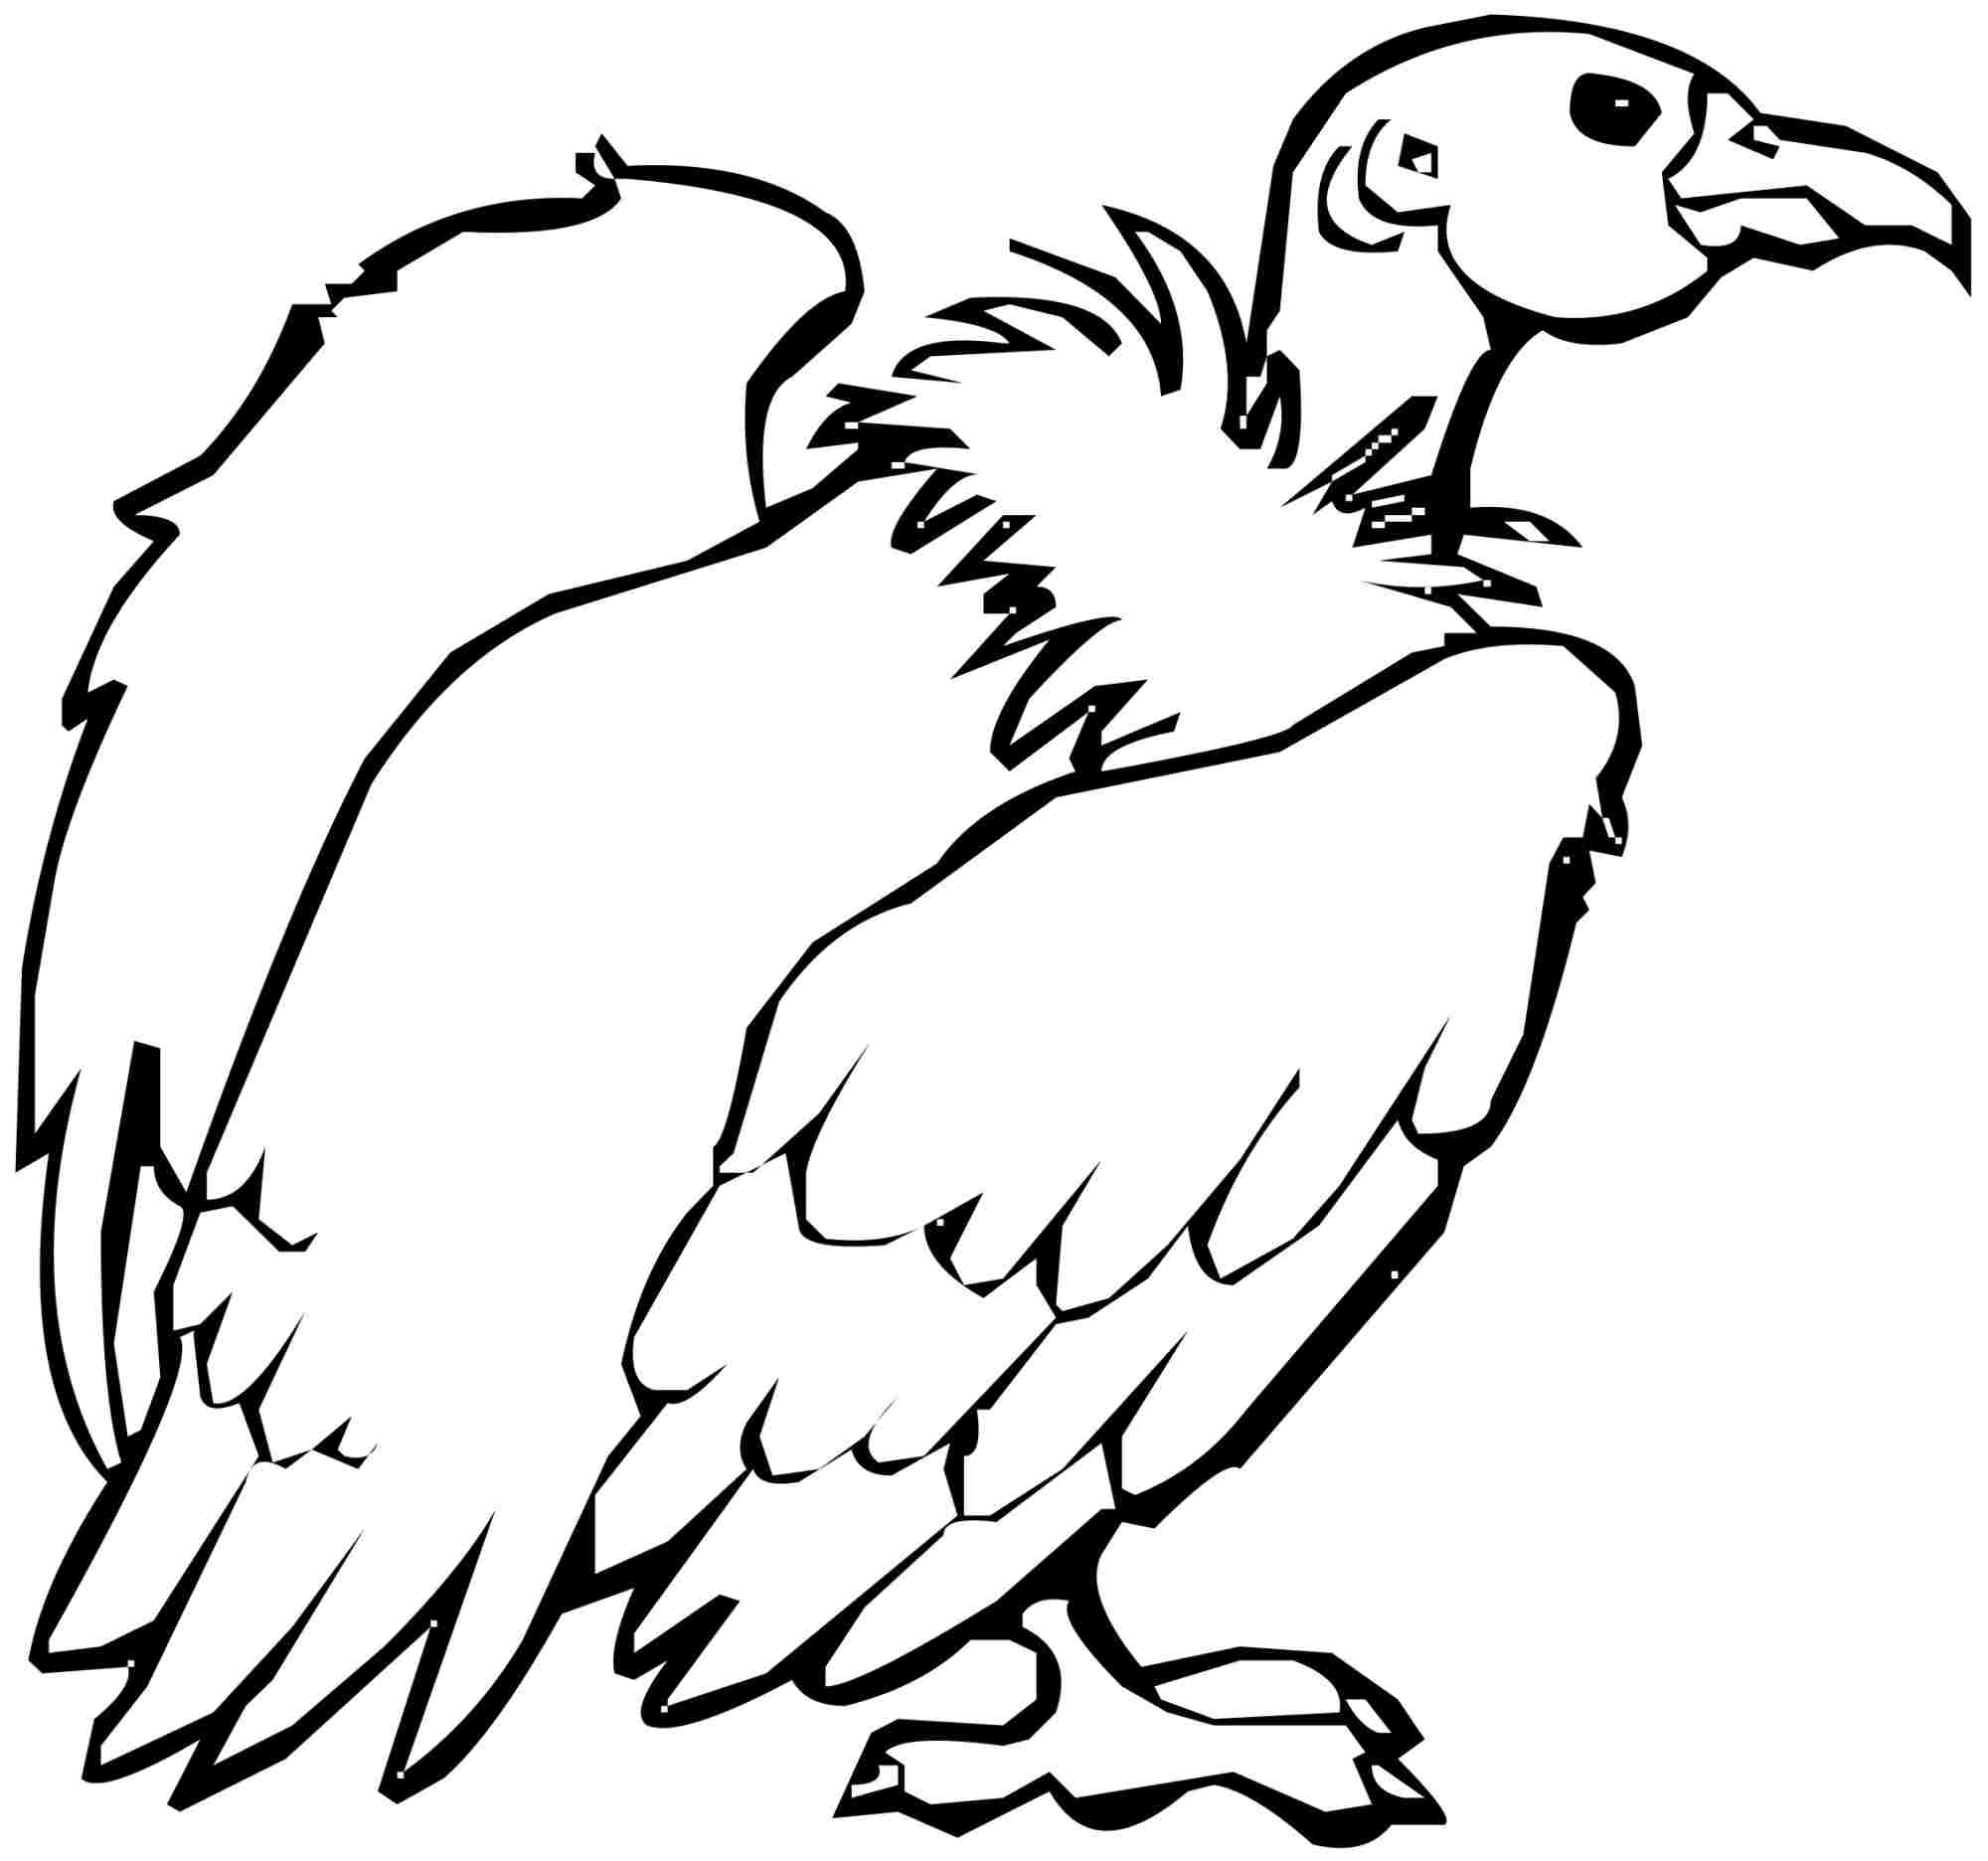 vulture coloring page vulture coloring pages preschool and kindergarten coloring vulture page